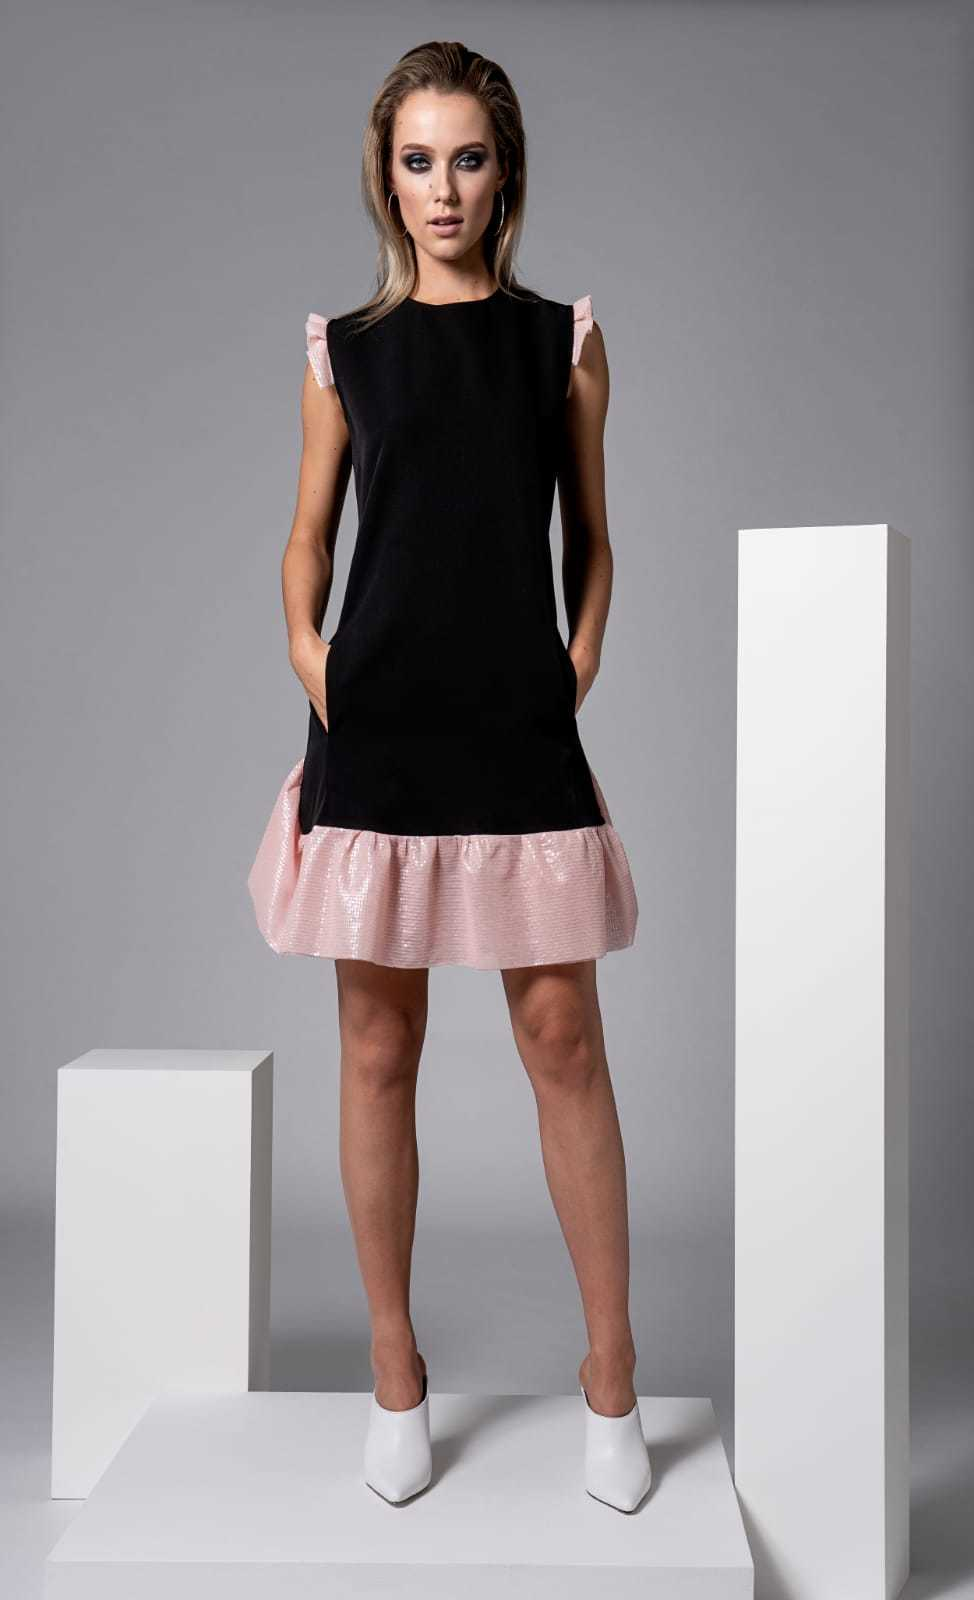 Lopez Dress in Black with Pale Pink Trims CARKKSISLOPEZ